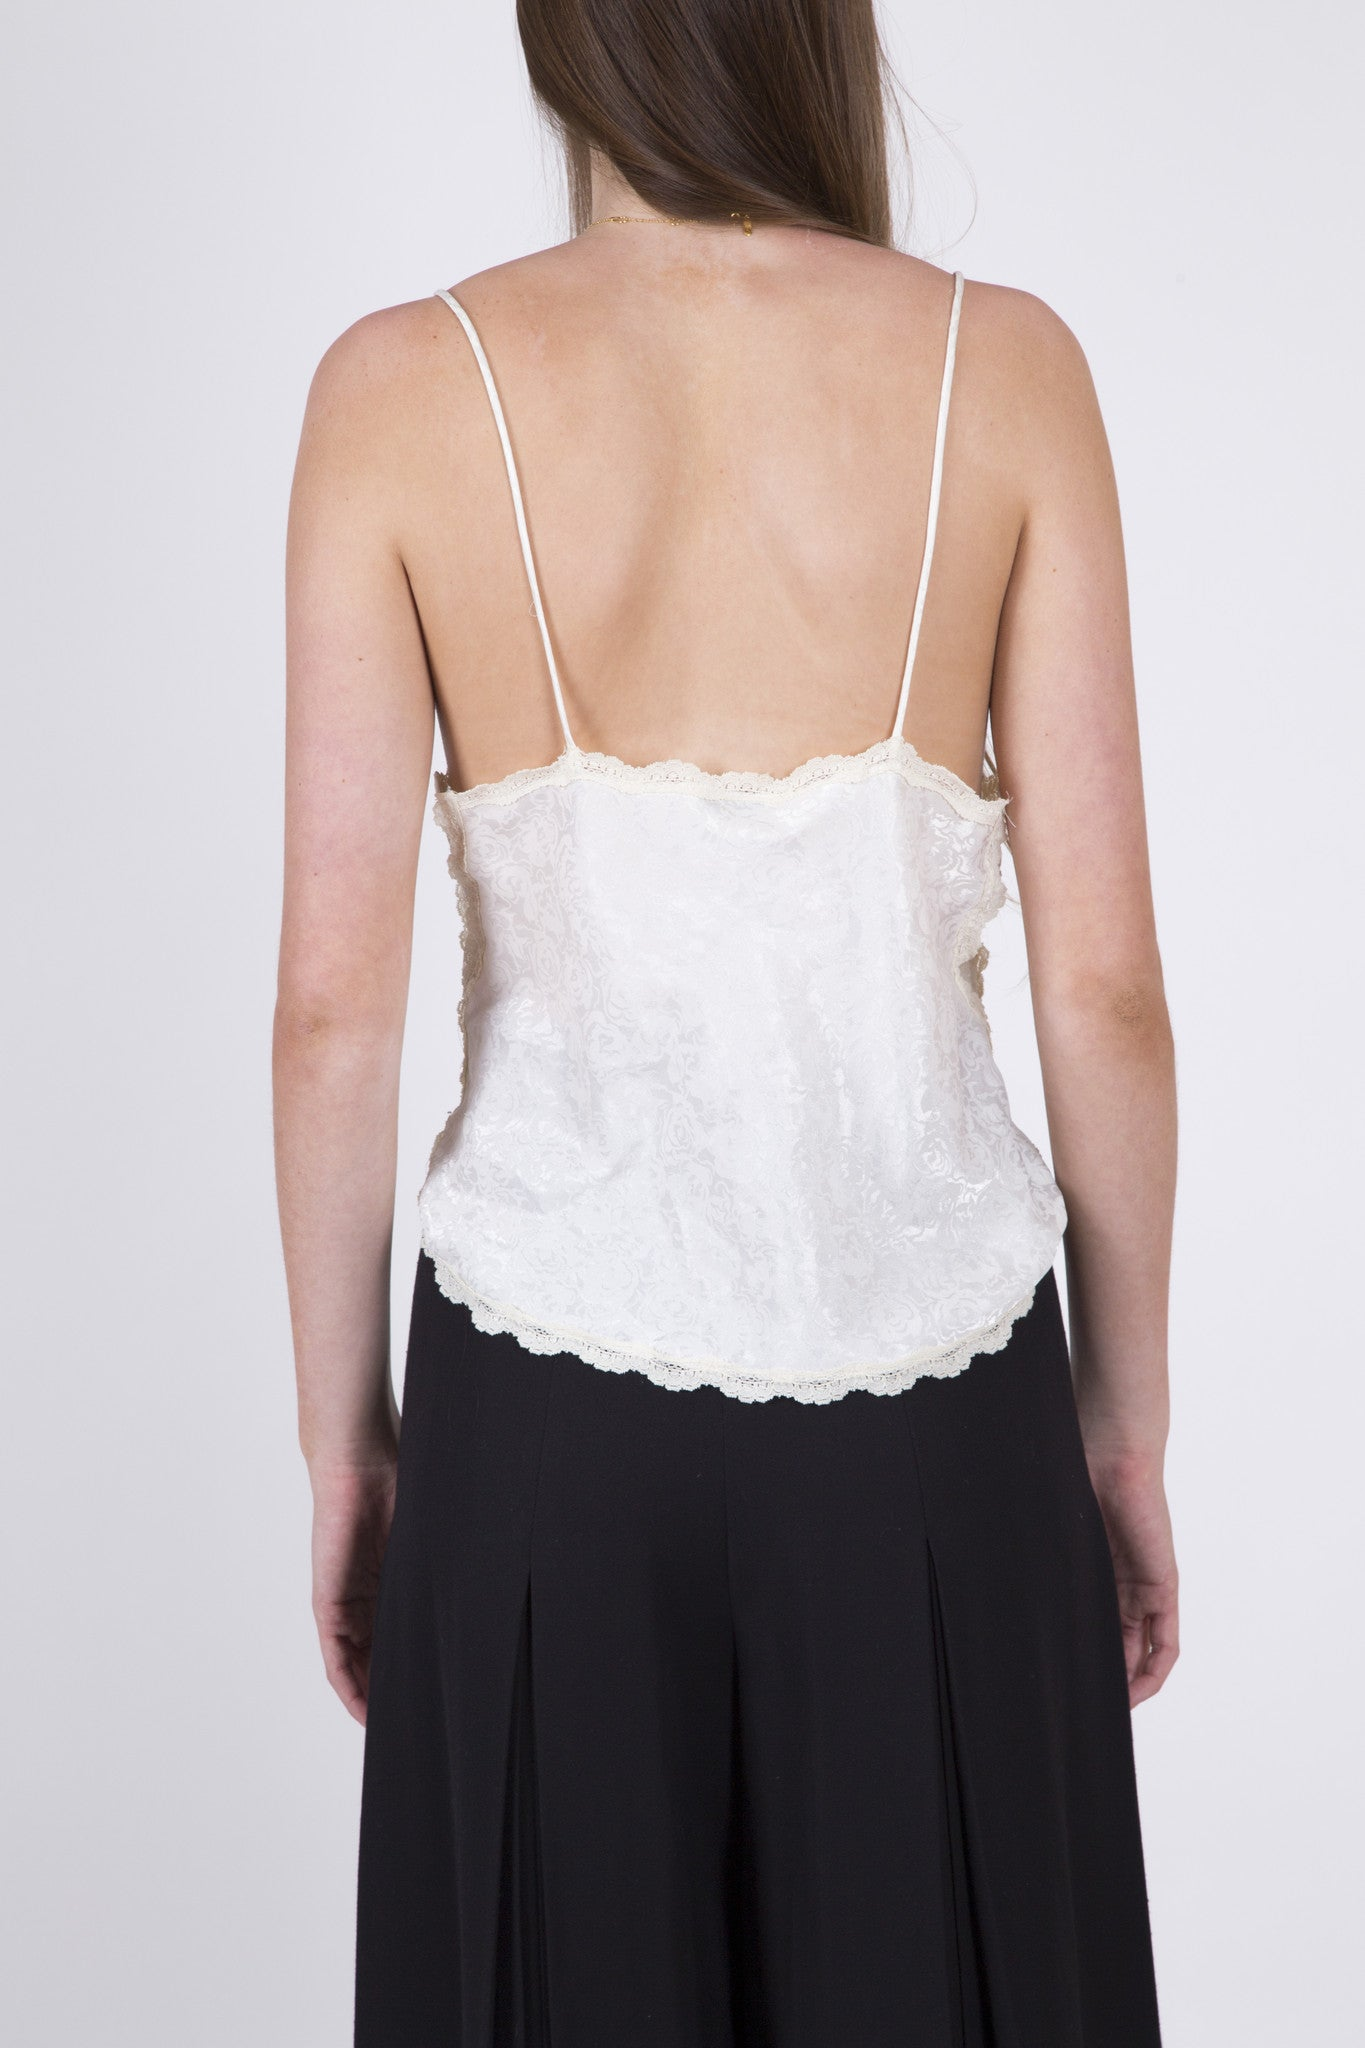 Christian Dior Vintage Camisole: Size Large